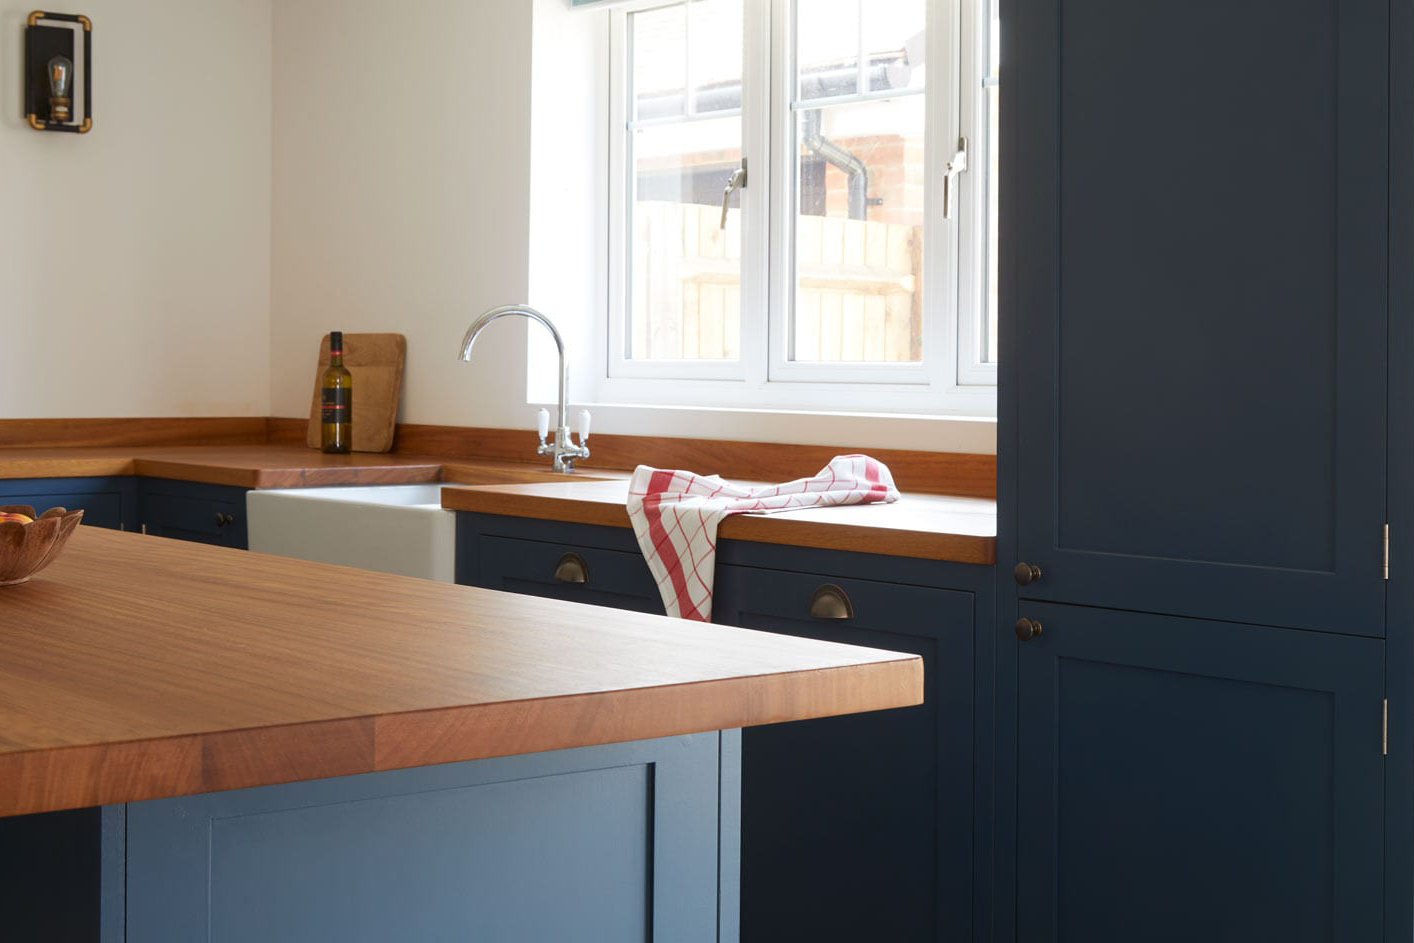 Grey Shaker kitchen with wooden worktops and Island.